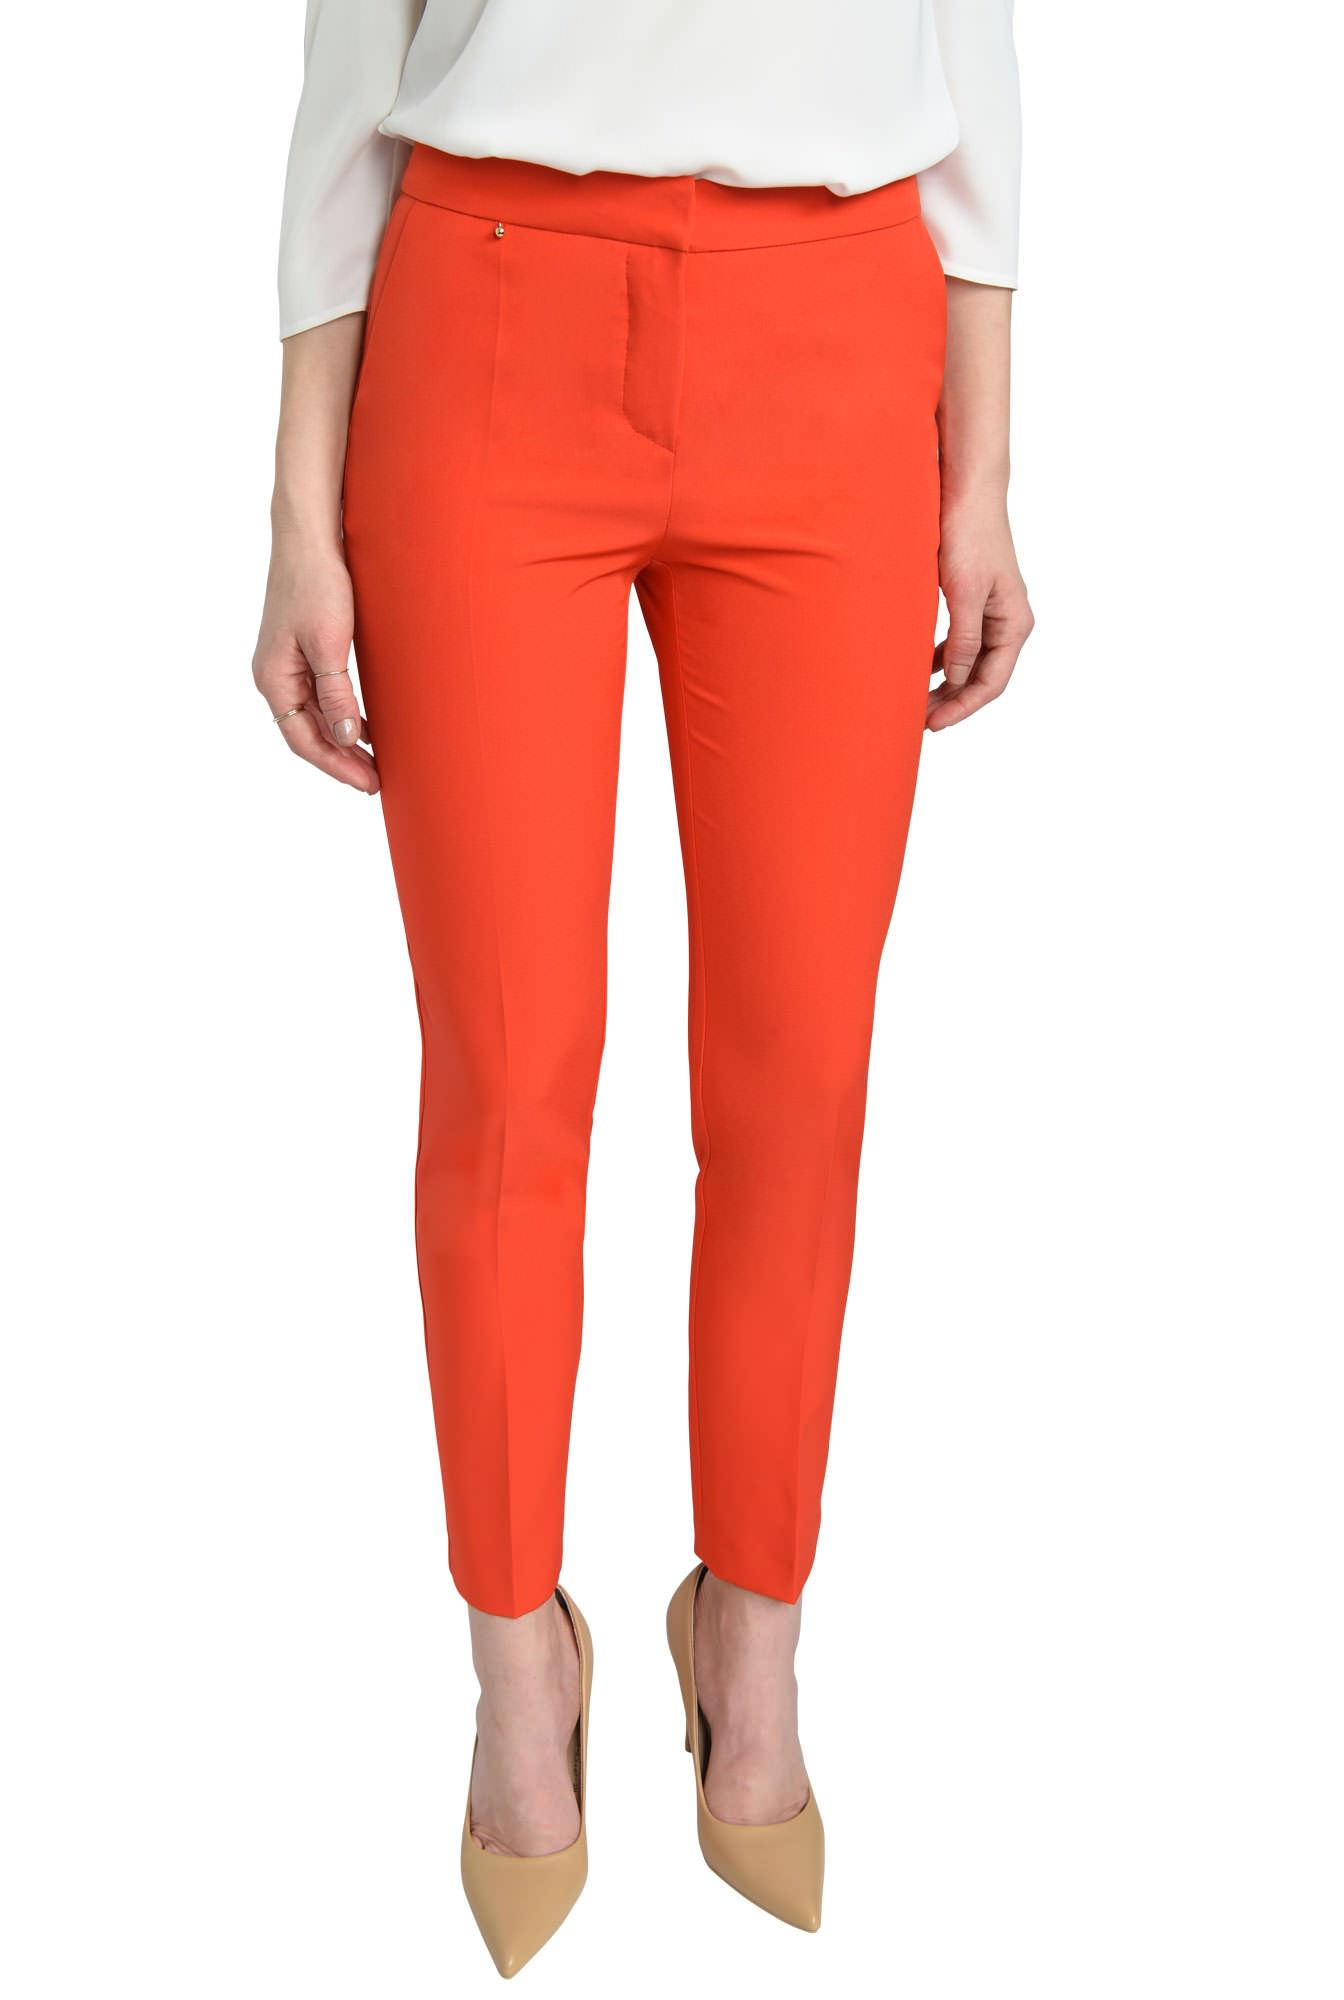 PANTALON CASUAL CONIC PT 128-CORAI